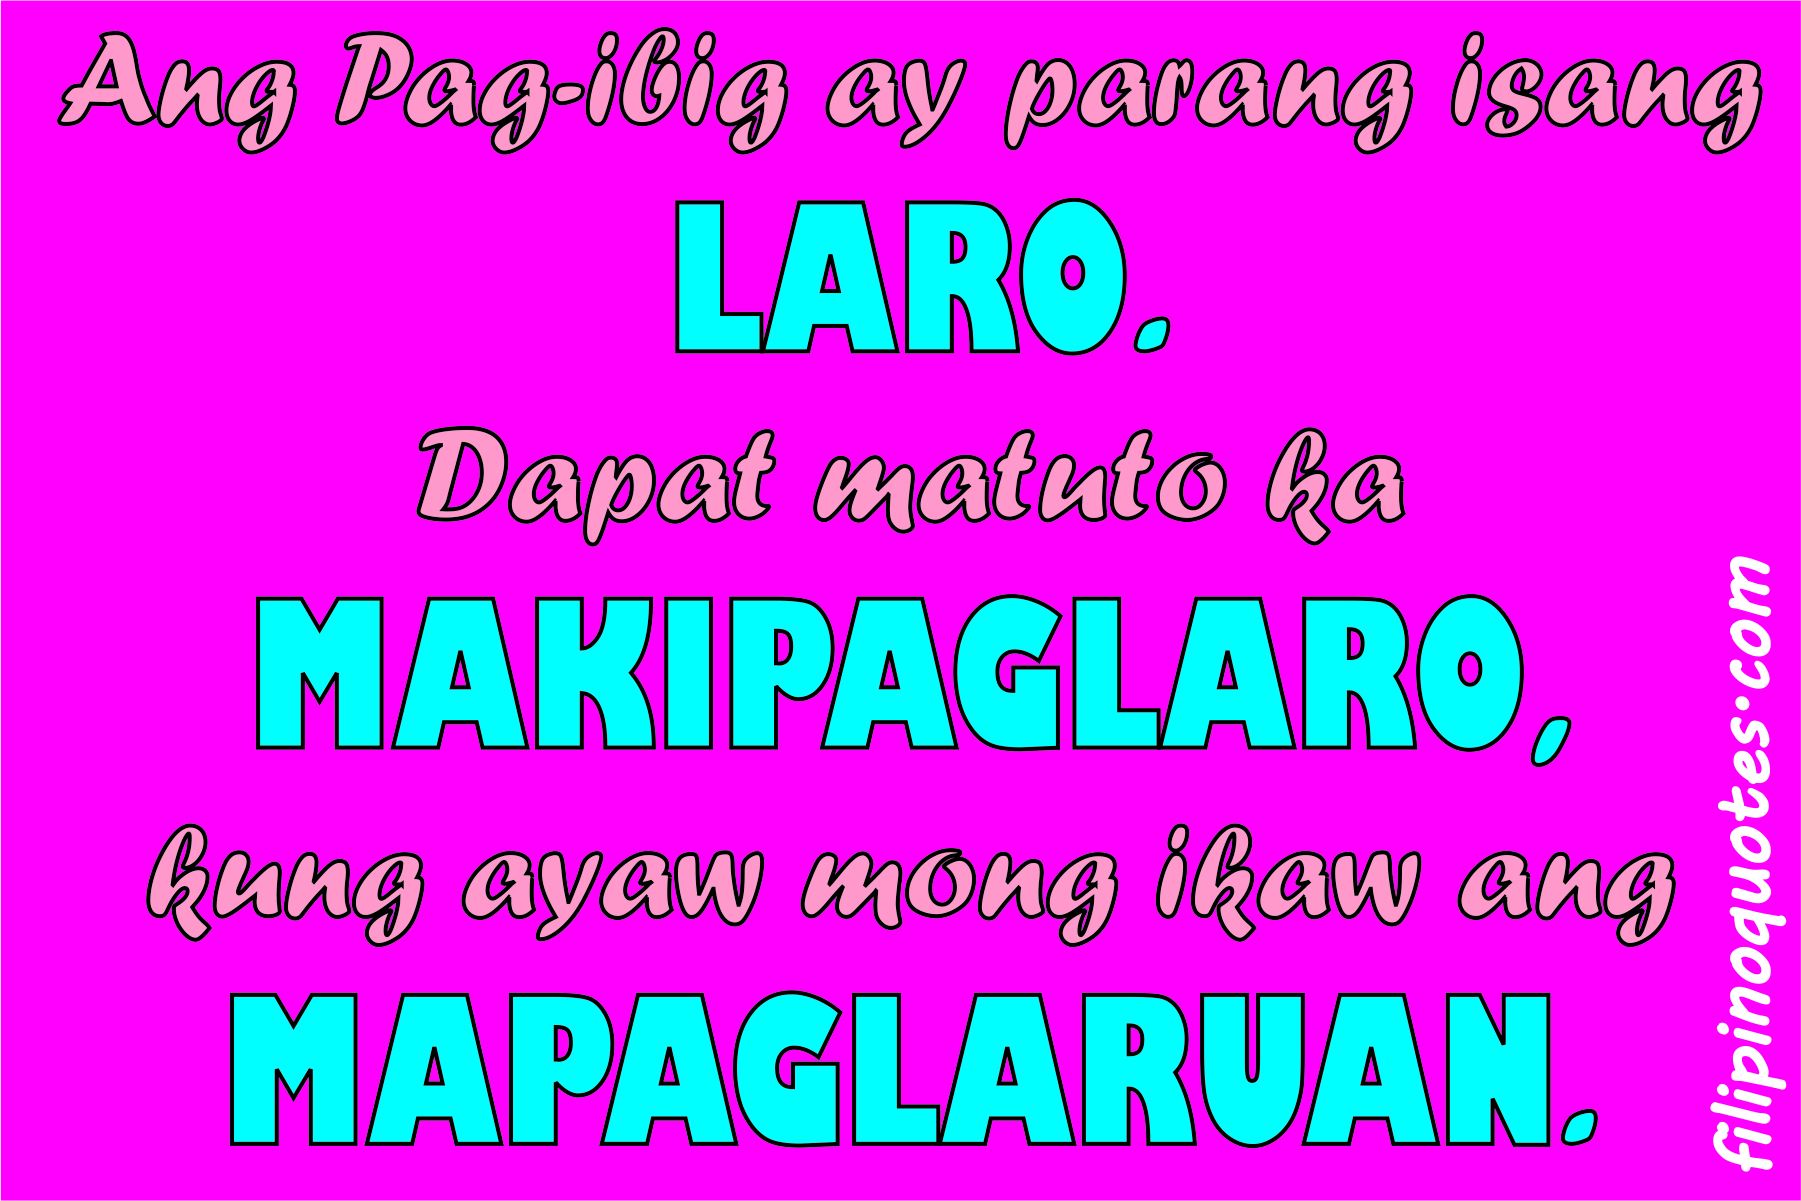 I Love You Quotes On Twitter Tagalog : Tagalog Love Quotes Images. Sweet Tagalog Love Quotes On Twitter. View ...